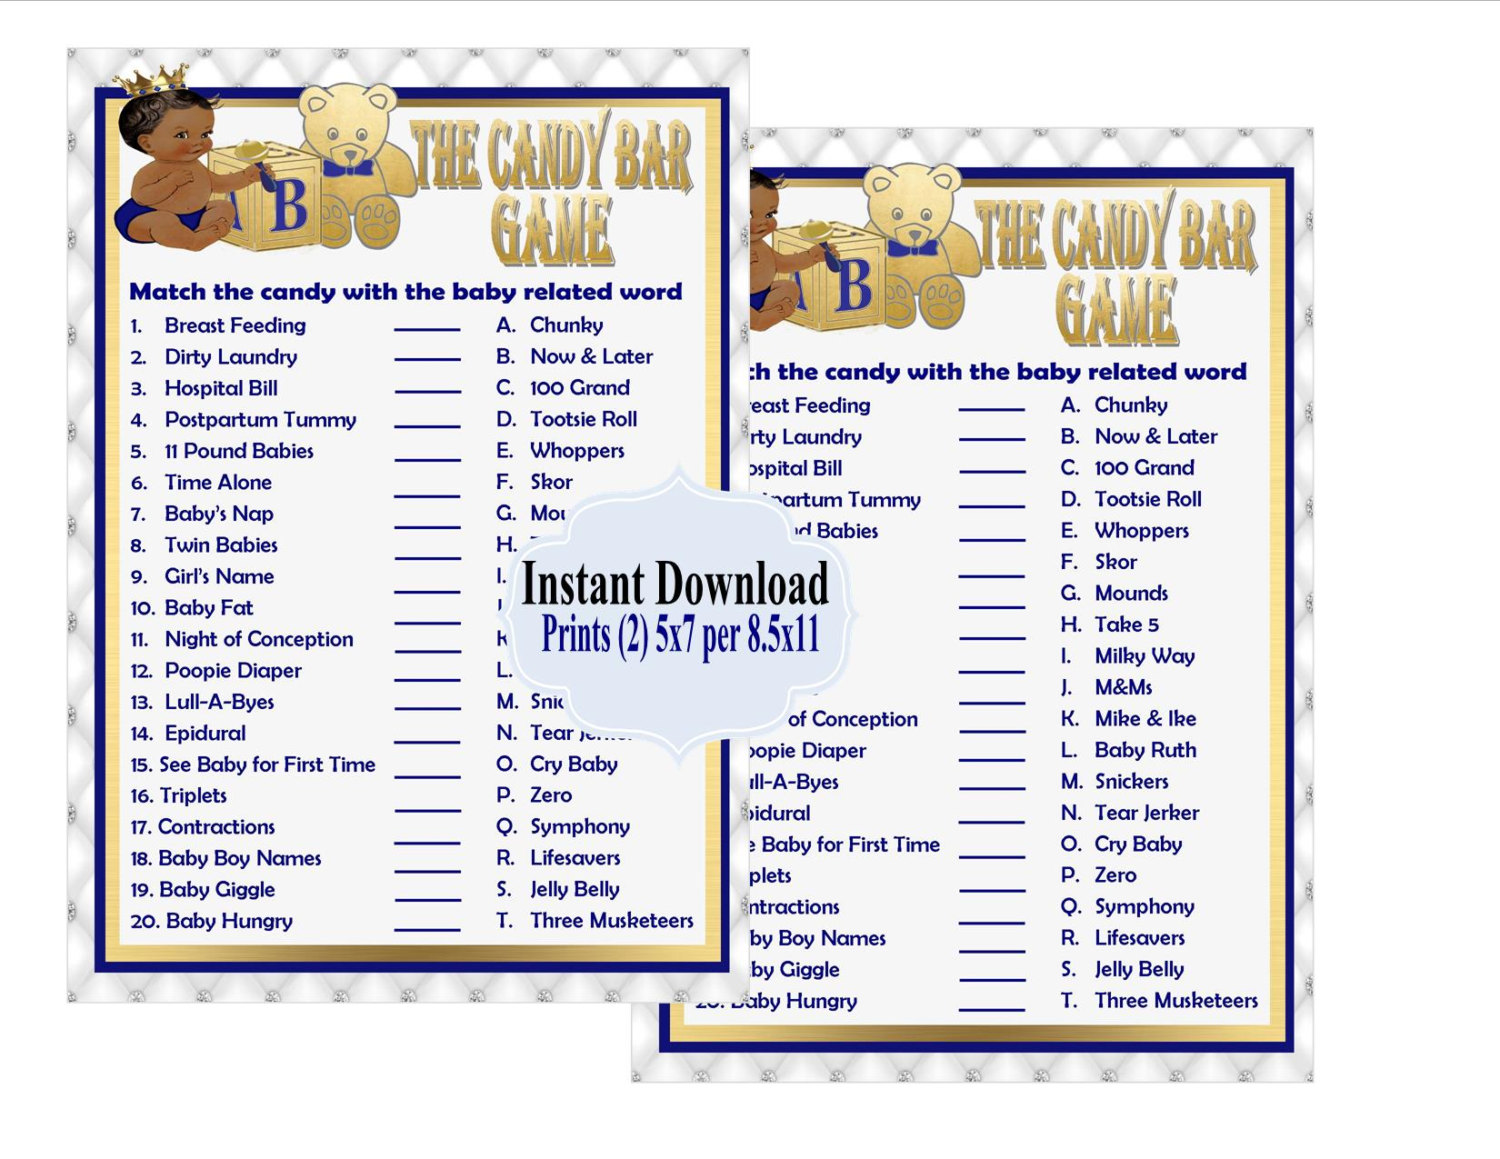 Baby Shower Candy Bar Game Printable That Are Current